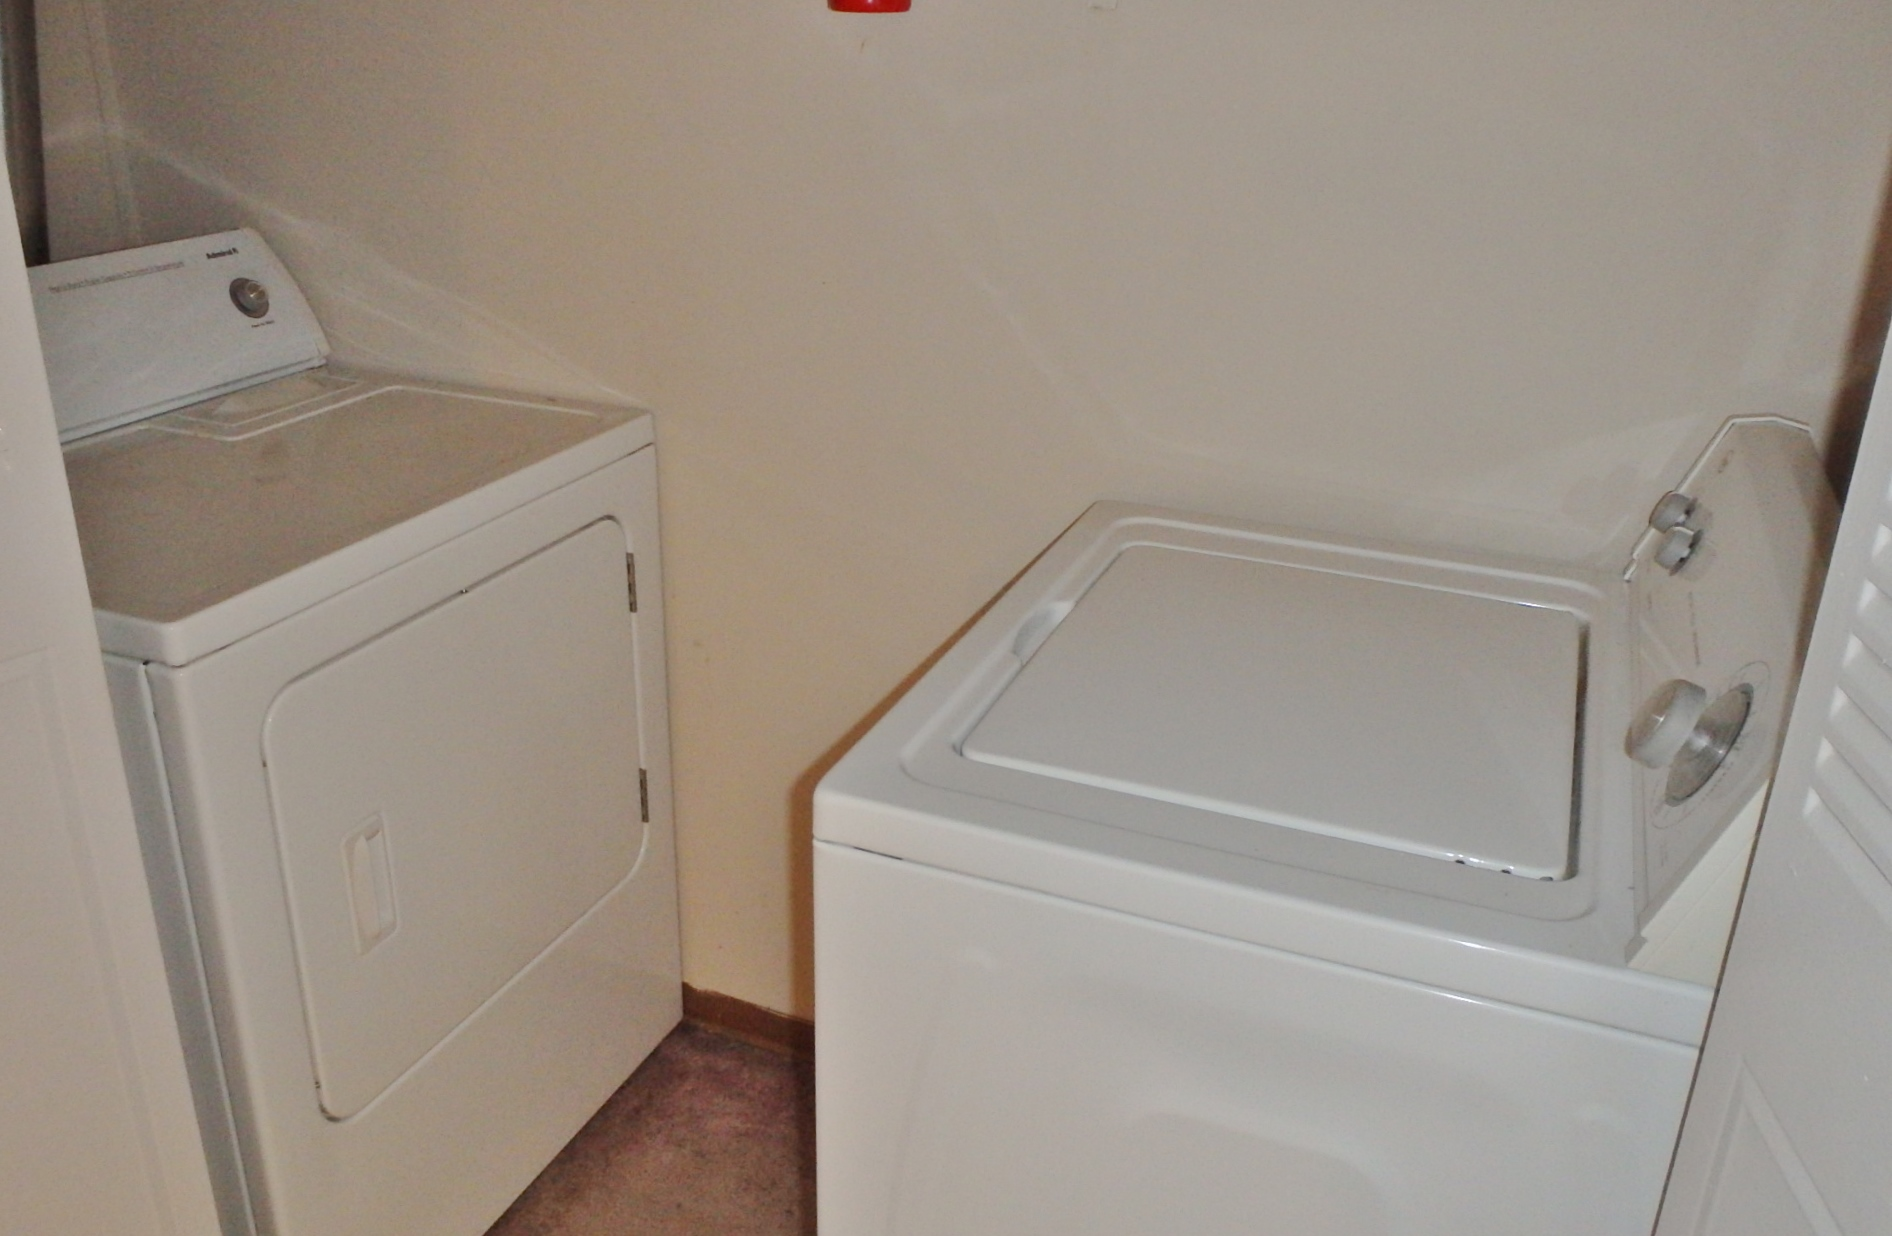 Laundry photo at 1606 Blue Course Drive.